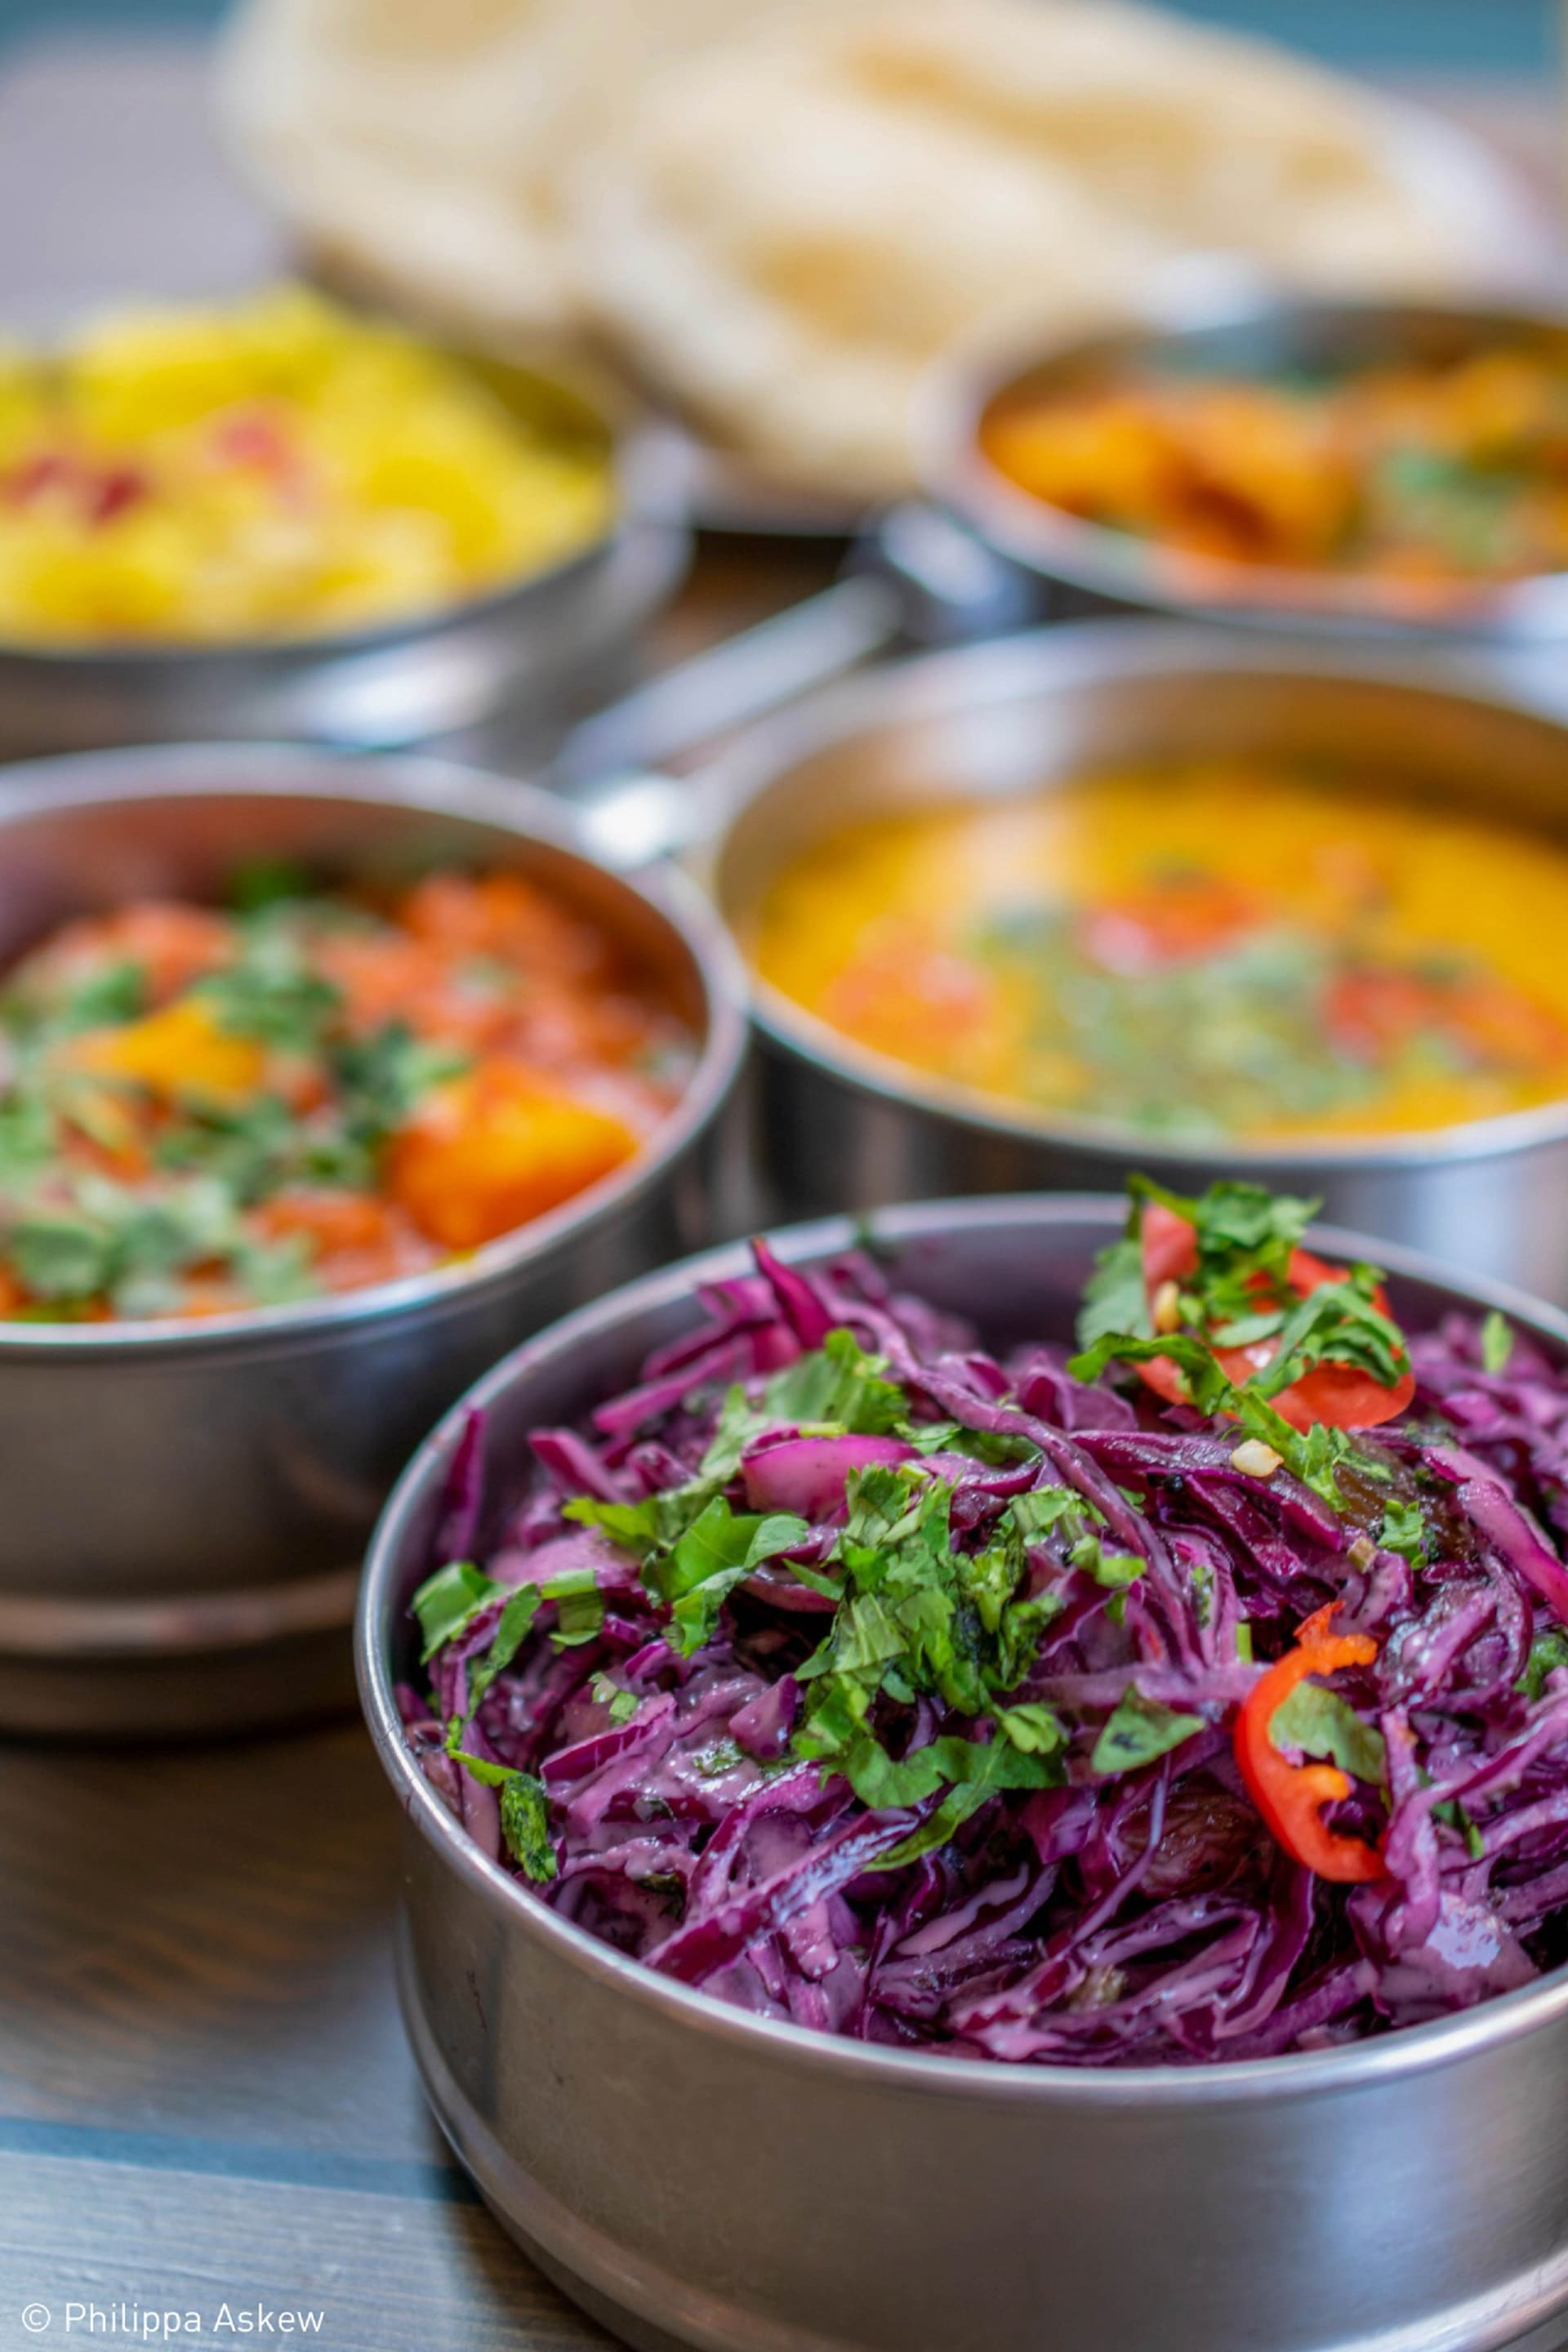 Student Food Photographer of the Year - Curry Banquet by Philippa Askew